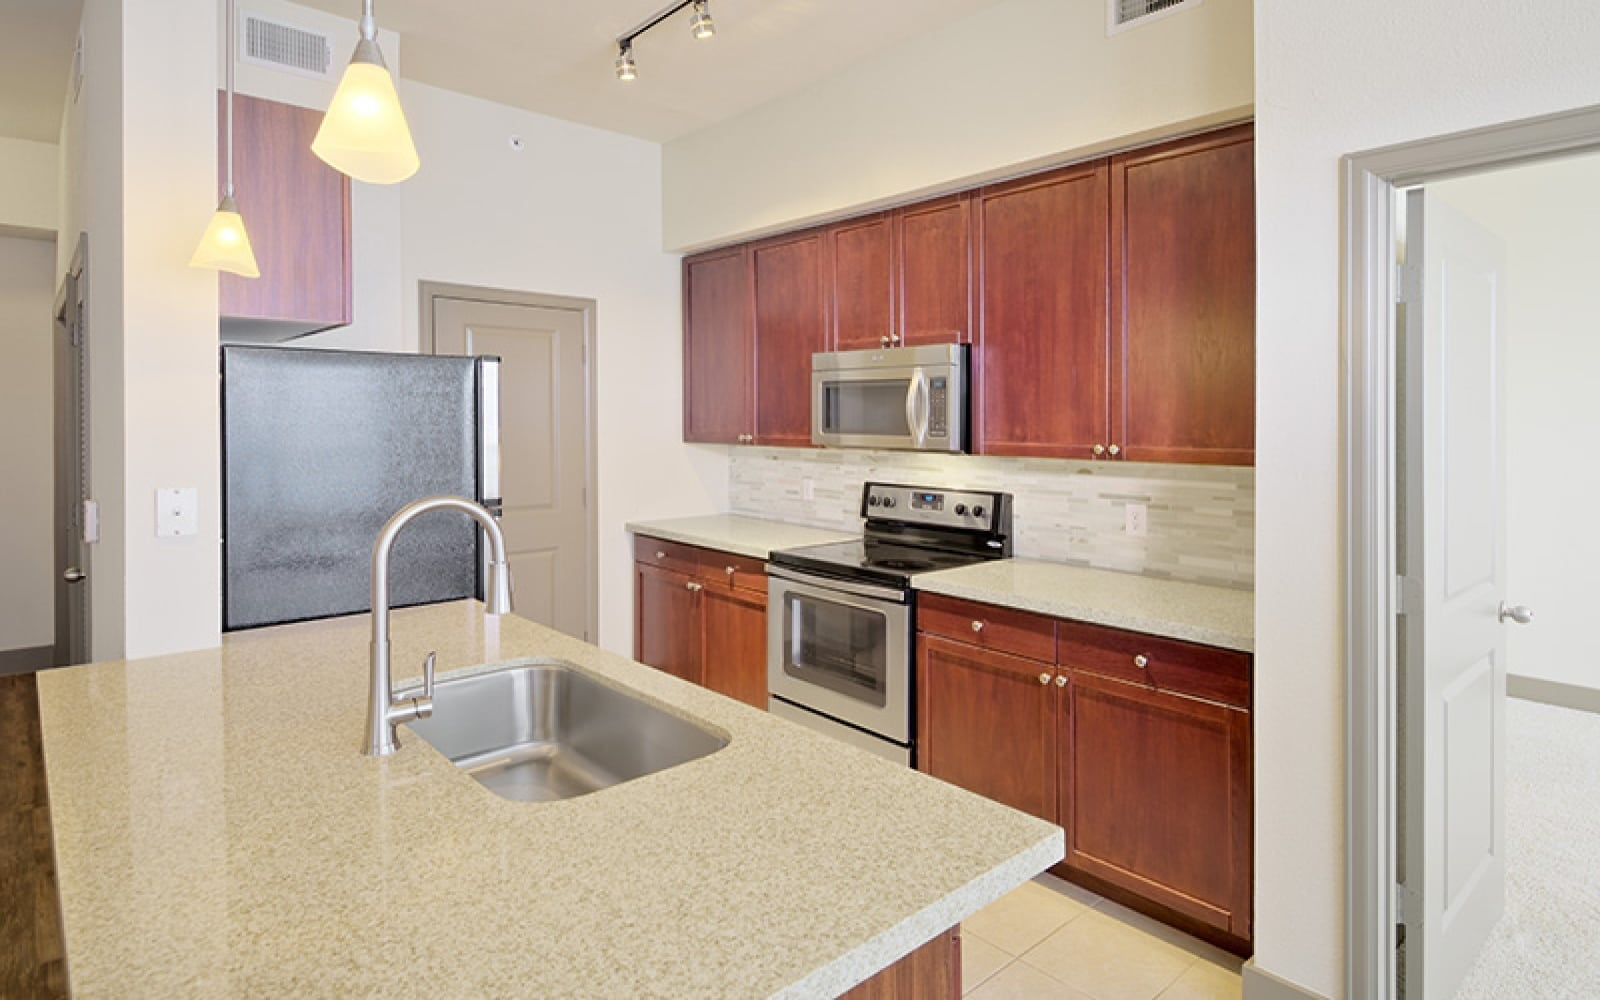 2222 Smith,Houston,77002,Apartment,Smith,2940